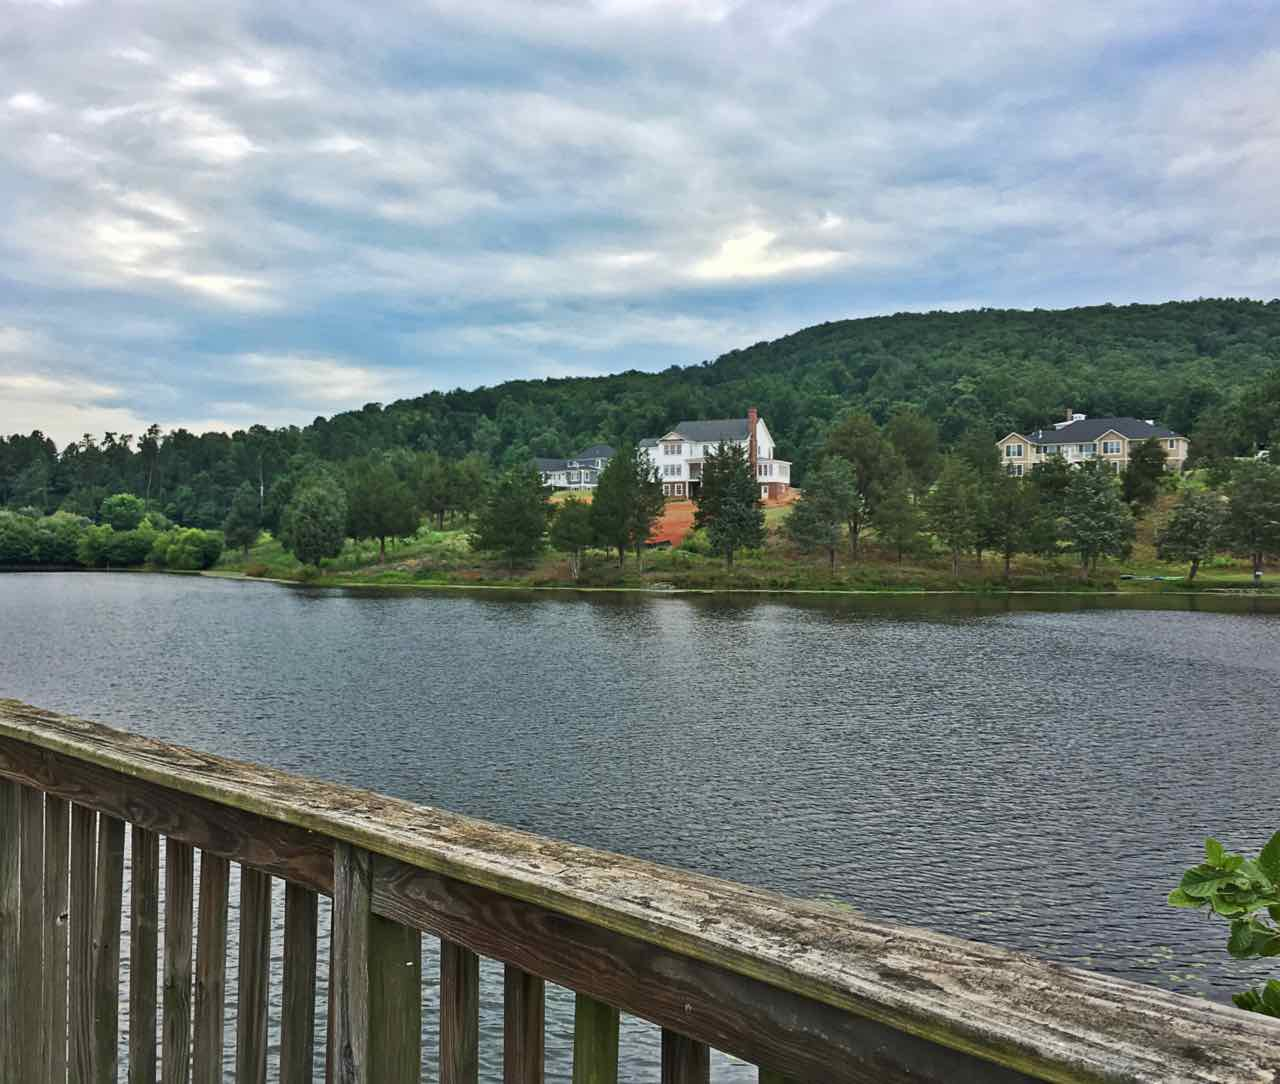 Community lake in Mountain valley farm subdivision